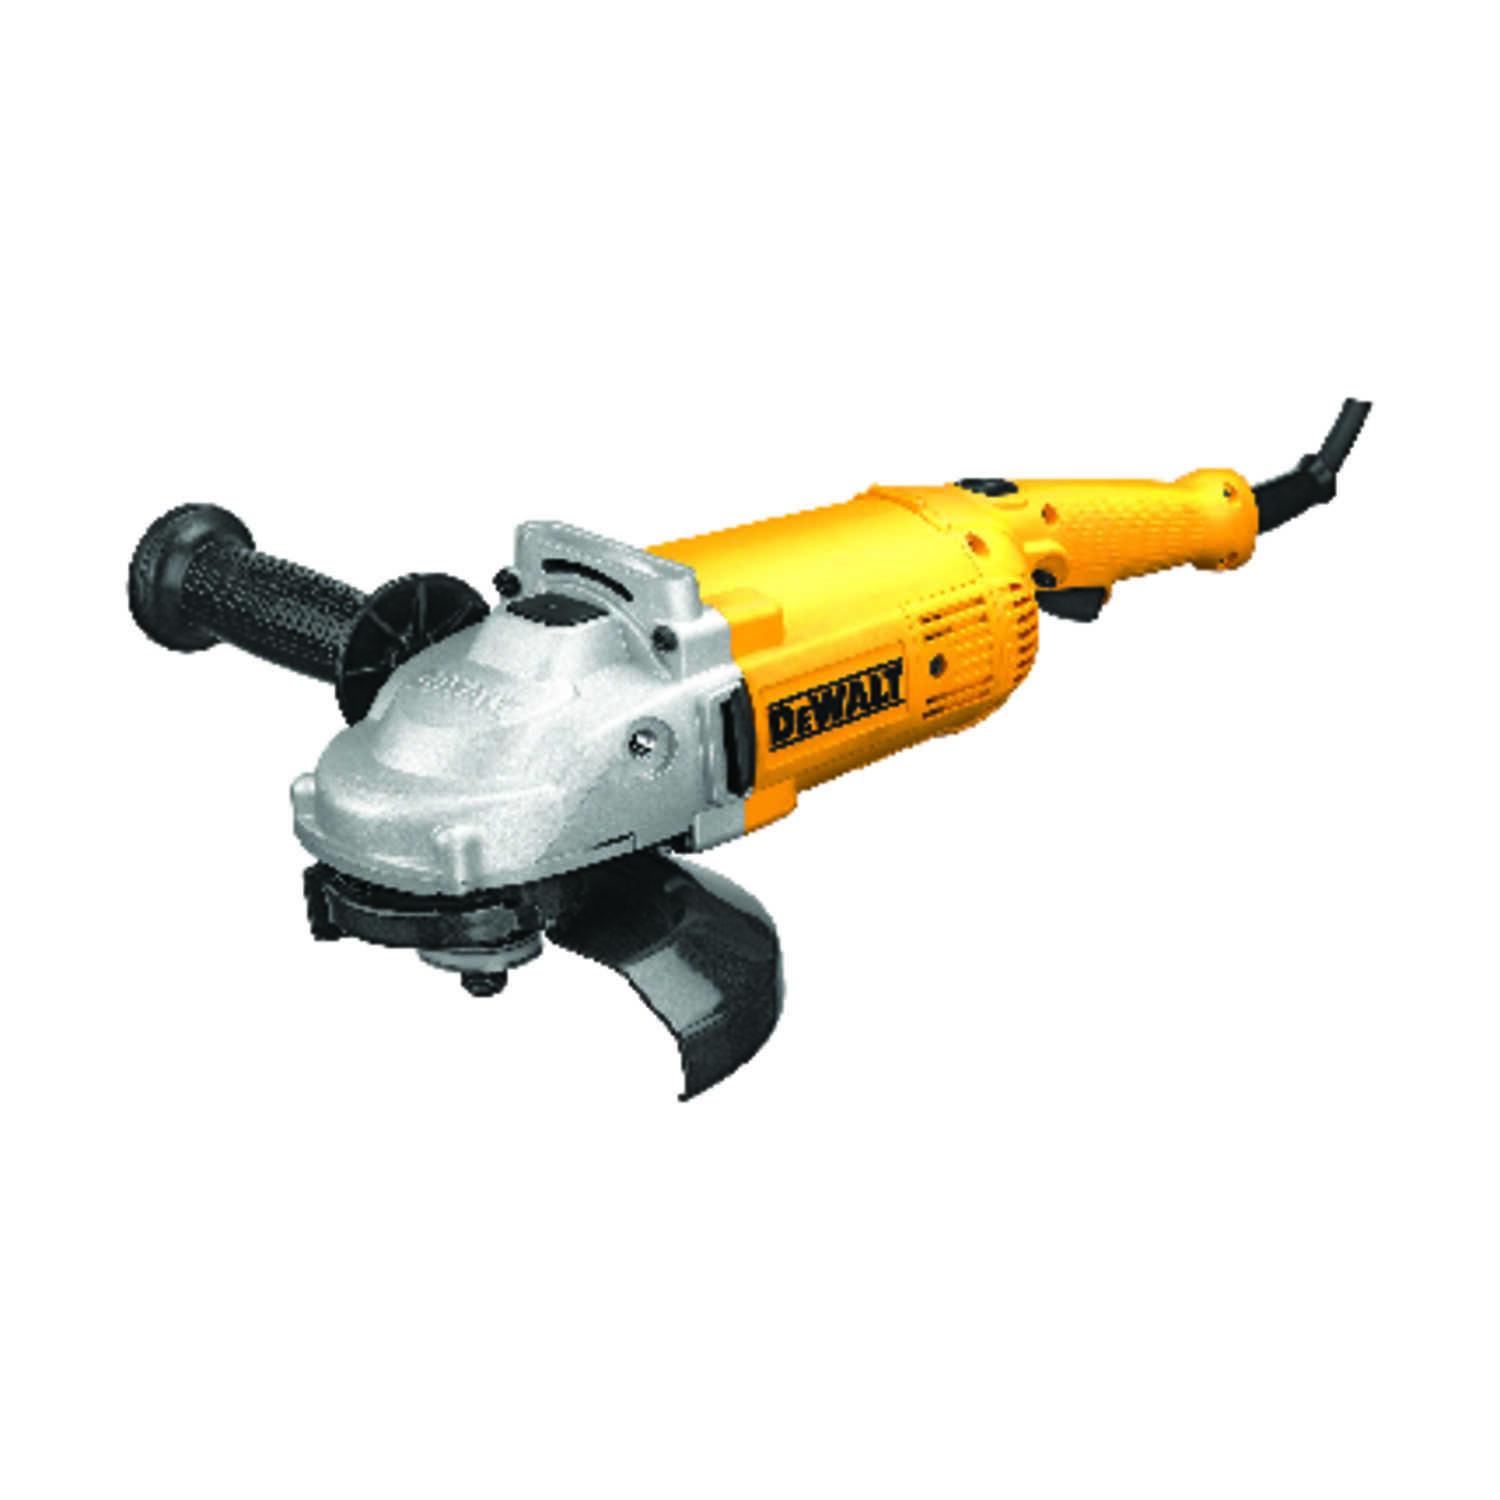 DeWalt  Corded  15 amps 7 in. Small Angle Grinder  Bare Tool  Paddle  8500 rpm